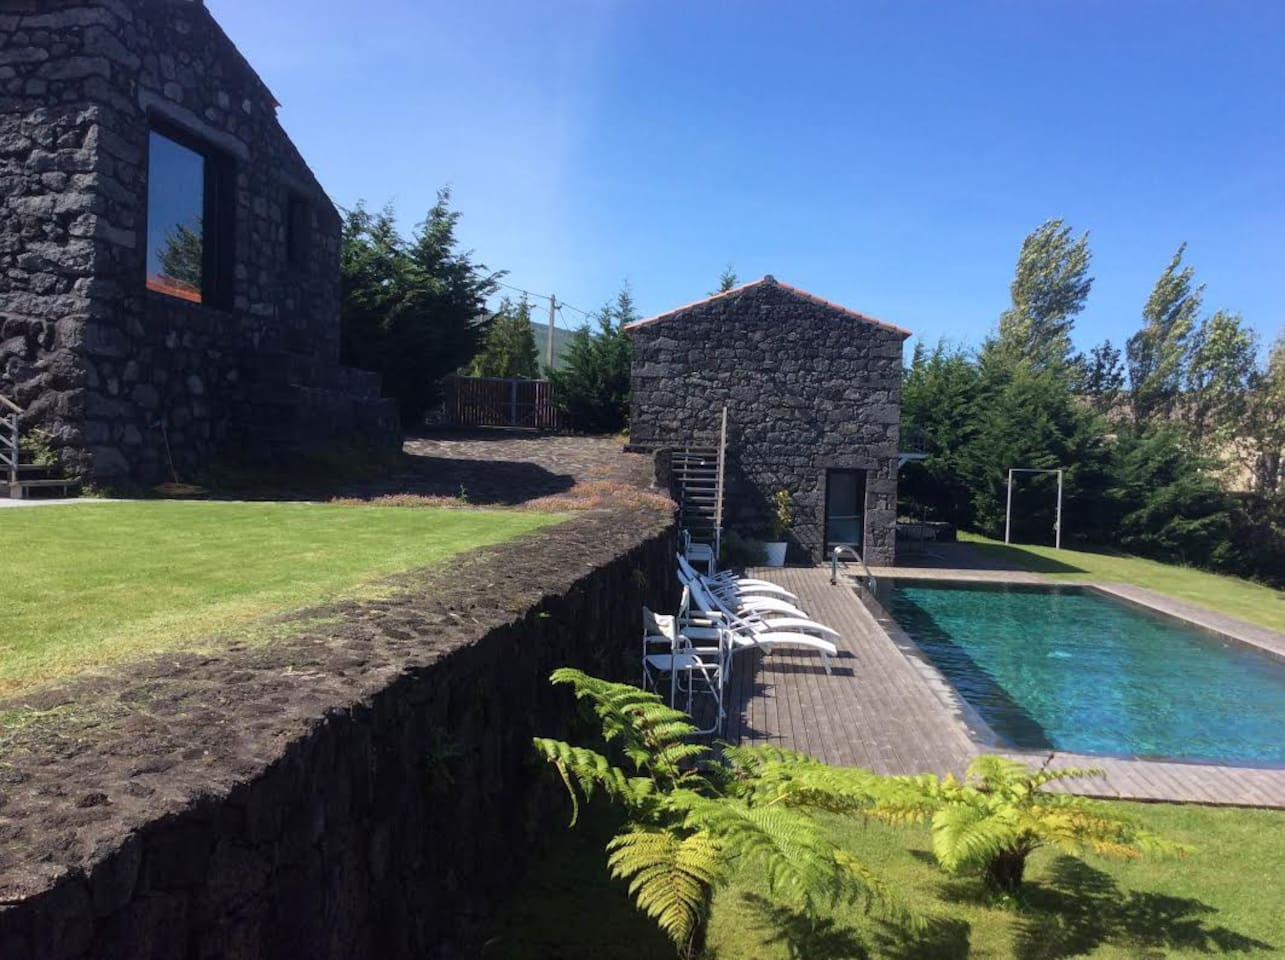 View of main lava house with heated pool and a reconverted barn with an upper storey bedroom and en suite bathroom, plus downstairs room which accommodates 4 people.